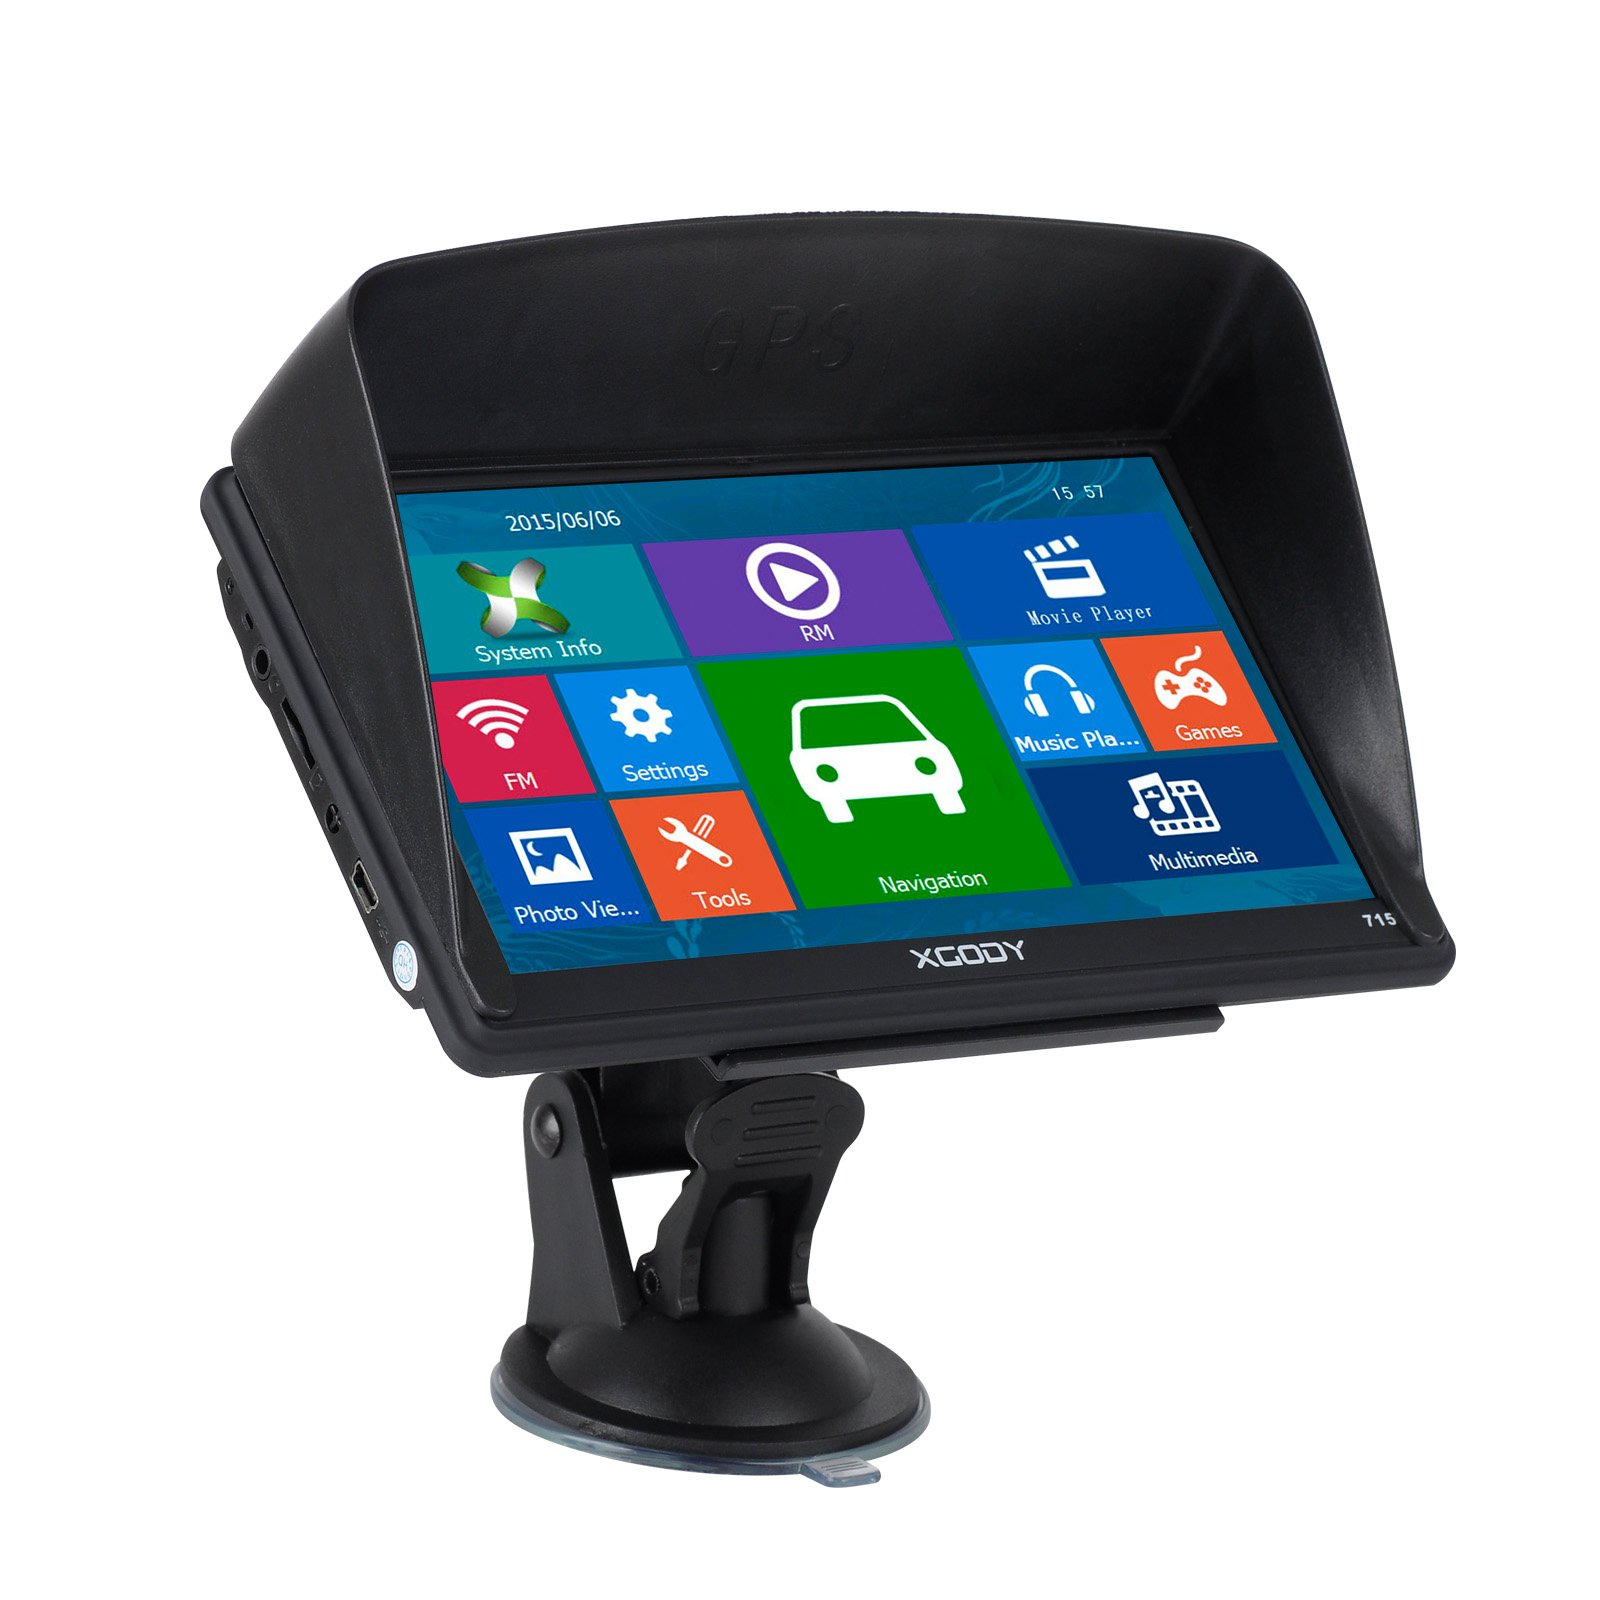 Xgody 715 7 Inch Car Truck GPS Navigation Sat Nav Capacitive Touch Screen with Sunshade Built-in 8GB FM MP4 MP3 Lifetime Map Updates with Spoken Turn-By-Turn Directions Black